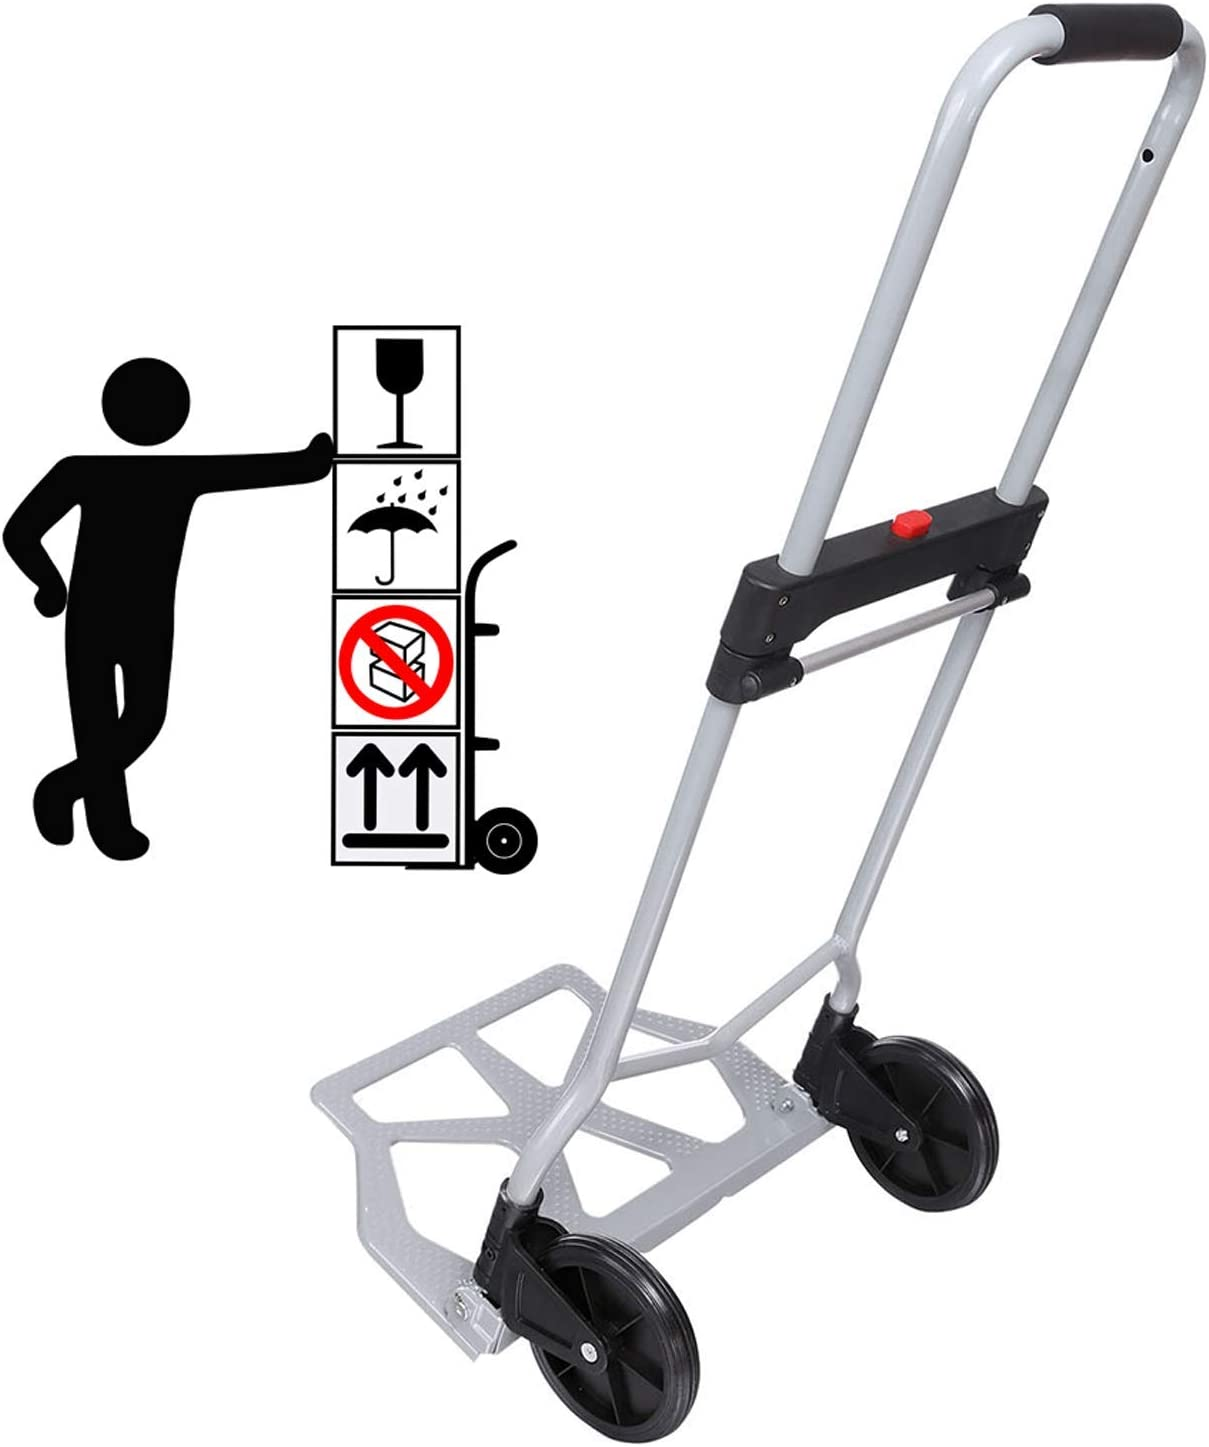 220lb Heavy Duty Folding Hand Truck Dolly, Assisted Hand Truck Luggage Cart with 2 Wheels-Black